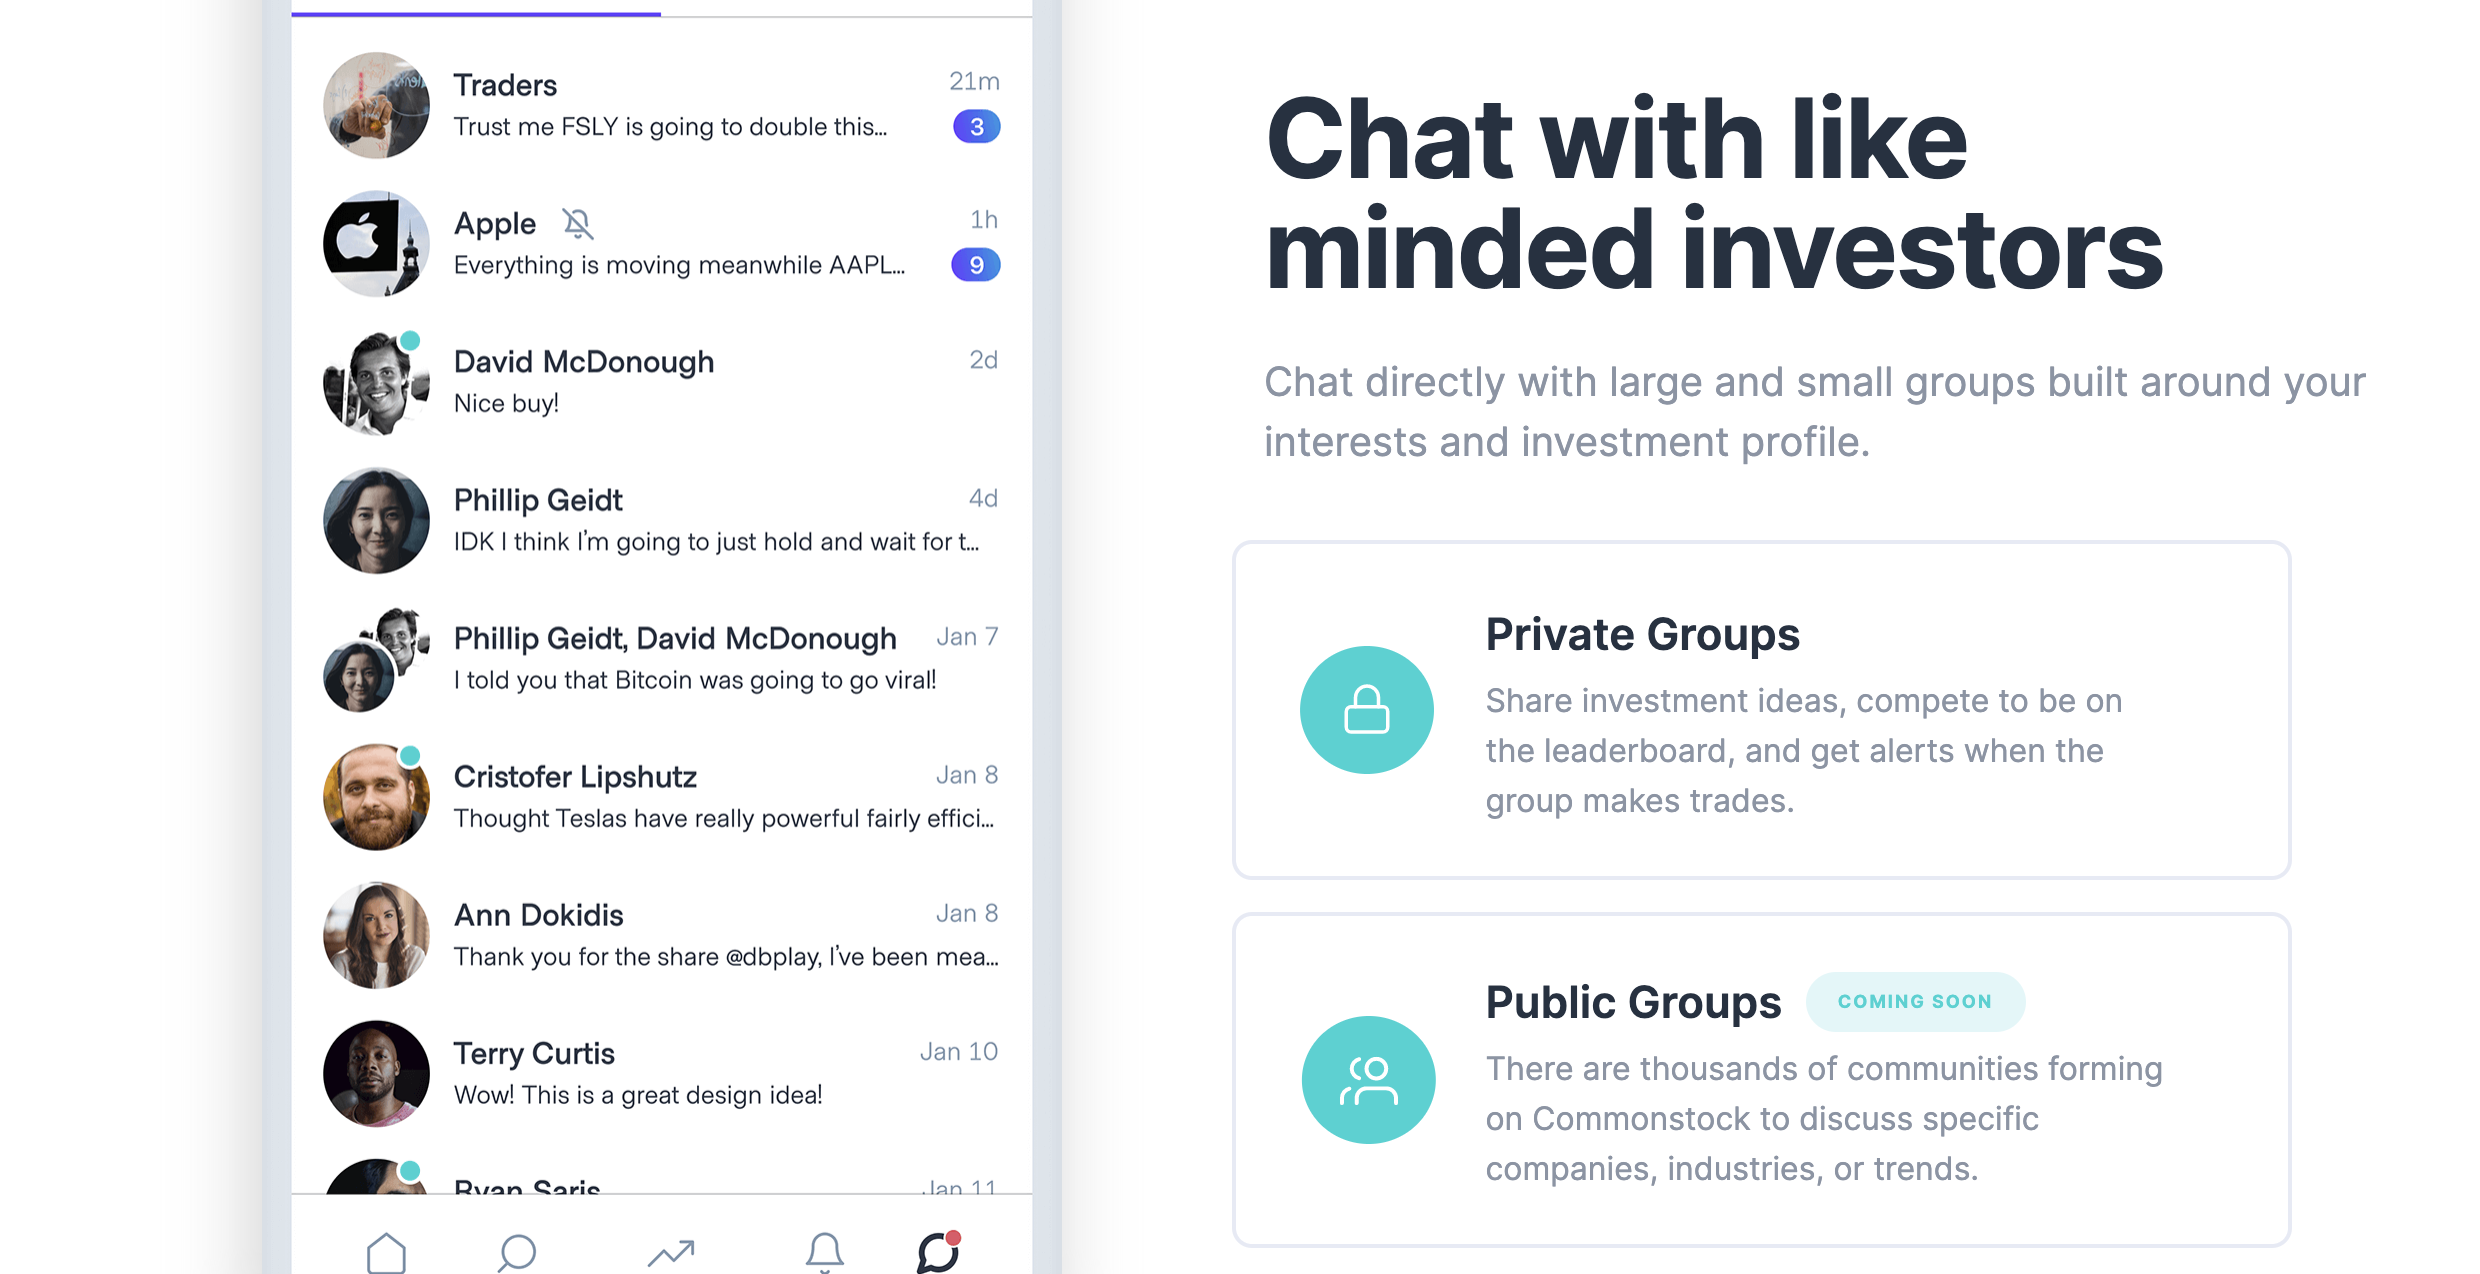 Group chats are another key feature of the app. Learn how to trade and invest by talking with others and learning from their portfolios. Image from commonstock.com.